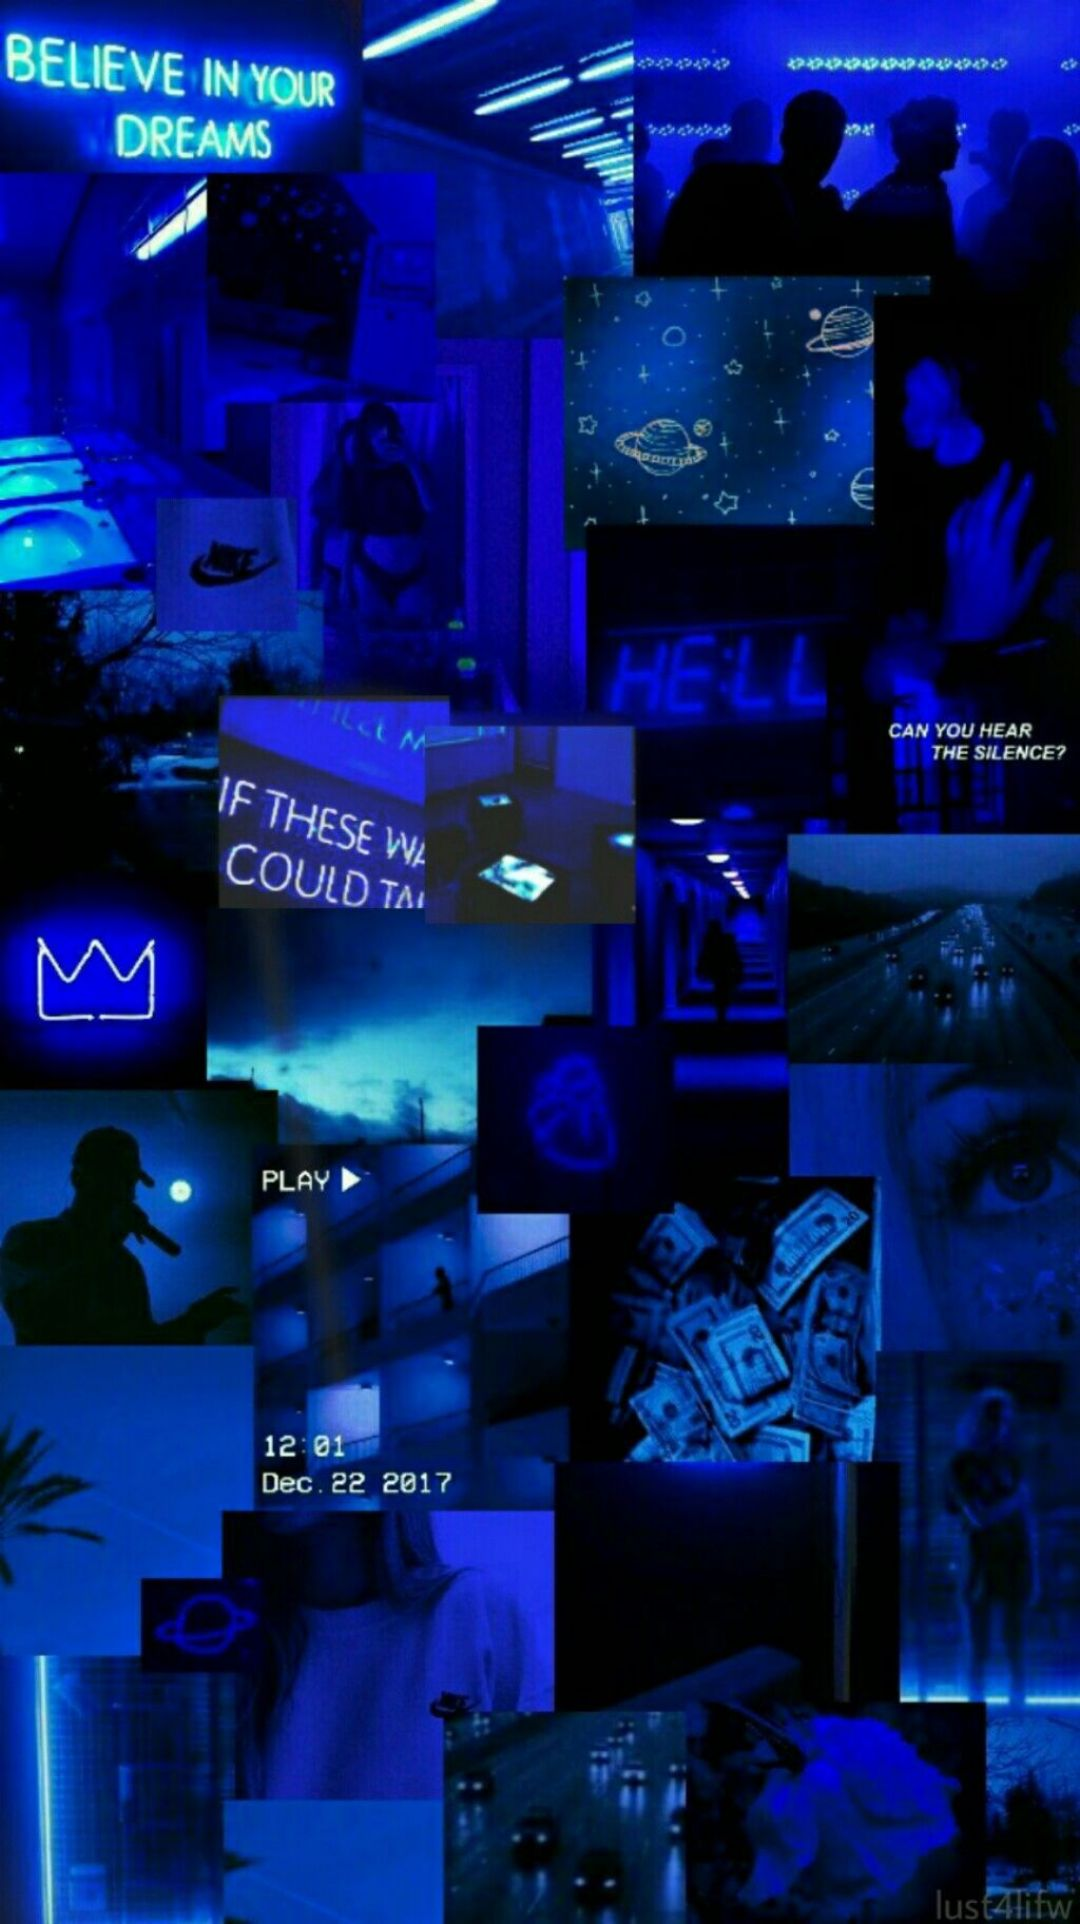 35 Dark Blue Aesthetic Tumblr Android Iphone Desktop Hd Backgrounds Wallpapers 1080p 4k 1080x1924 2020